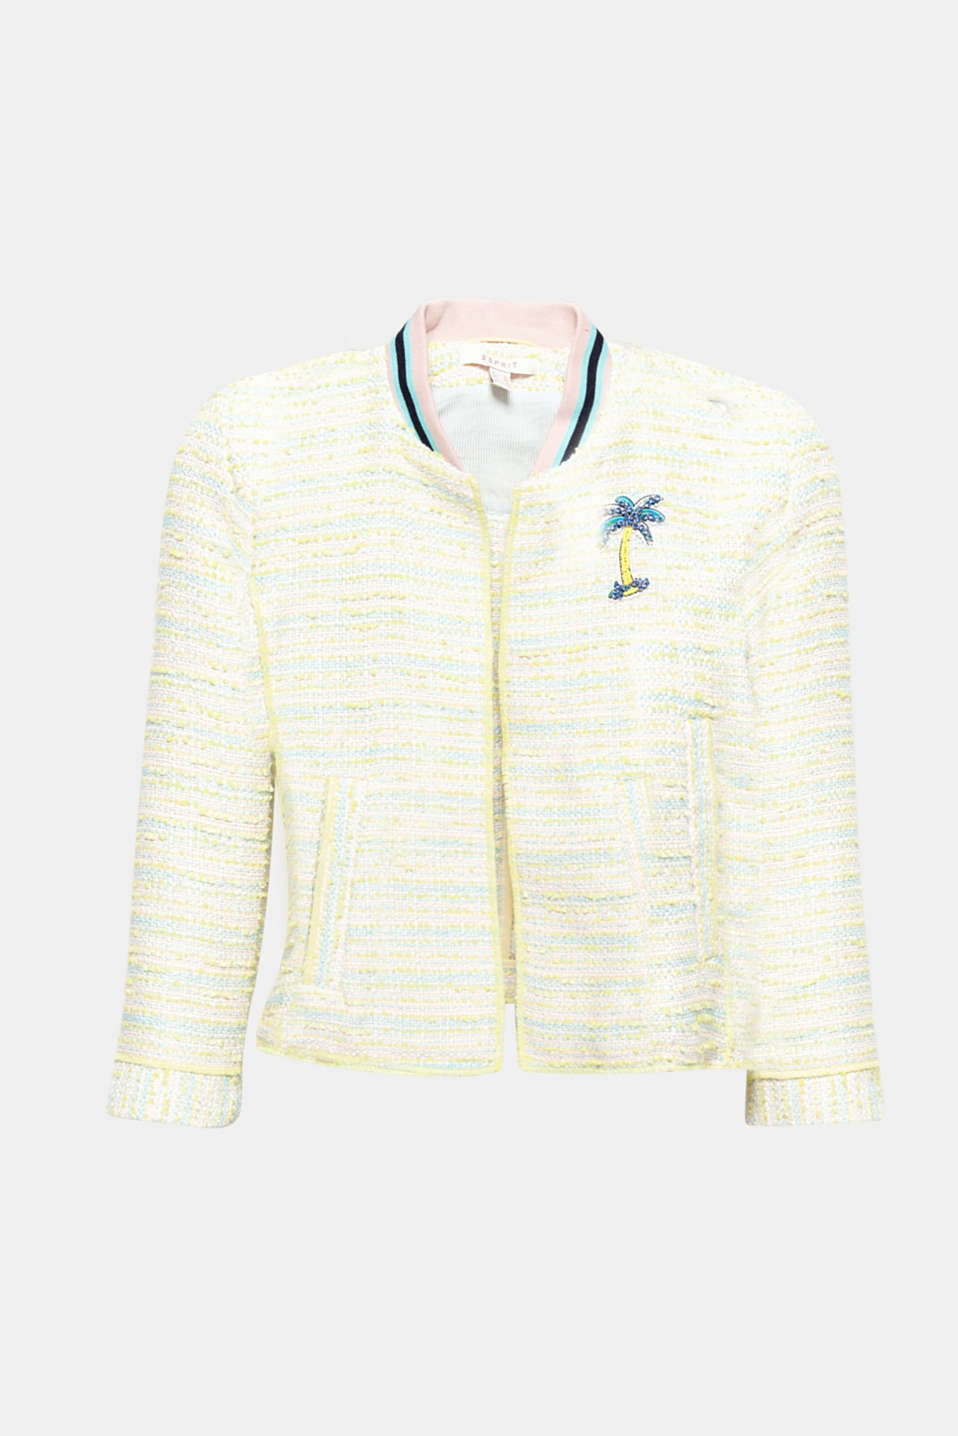 Fashion piece: The neon yellow and pastel colours, striped ribbed collar and appliquéd rhinestone palm make this short fitted jacket in summer bouclé a fashionable highlight!